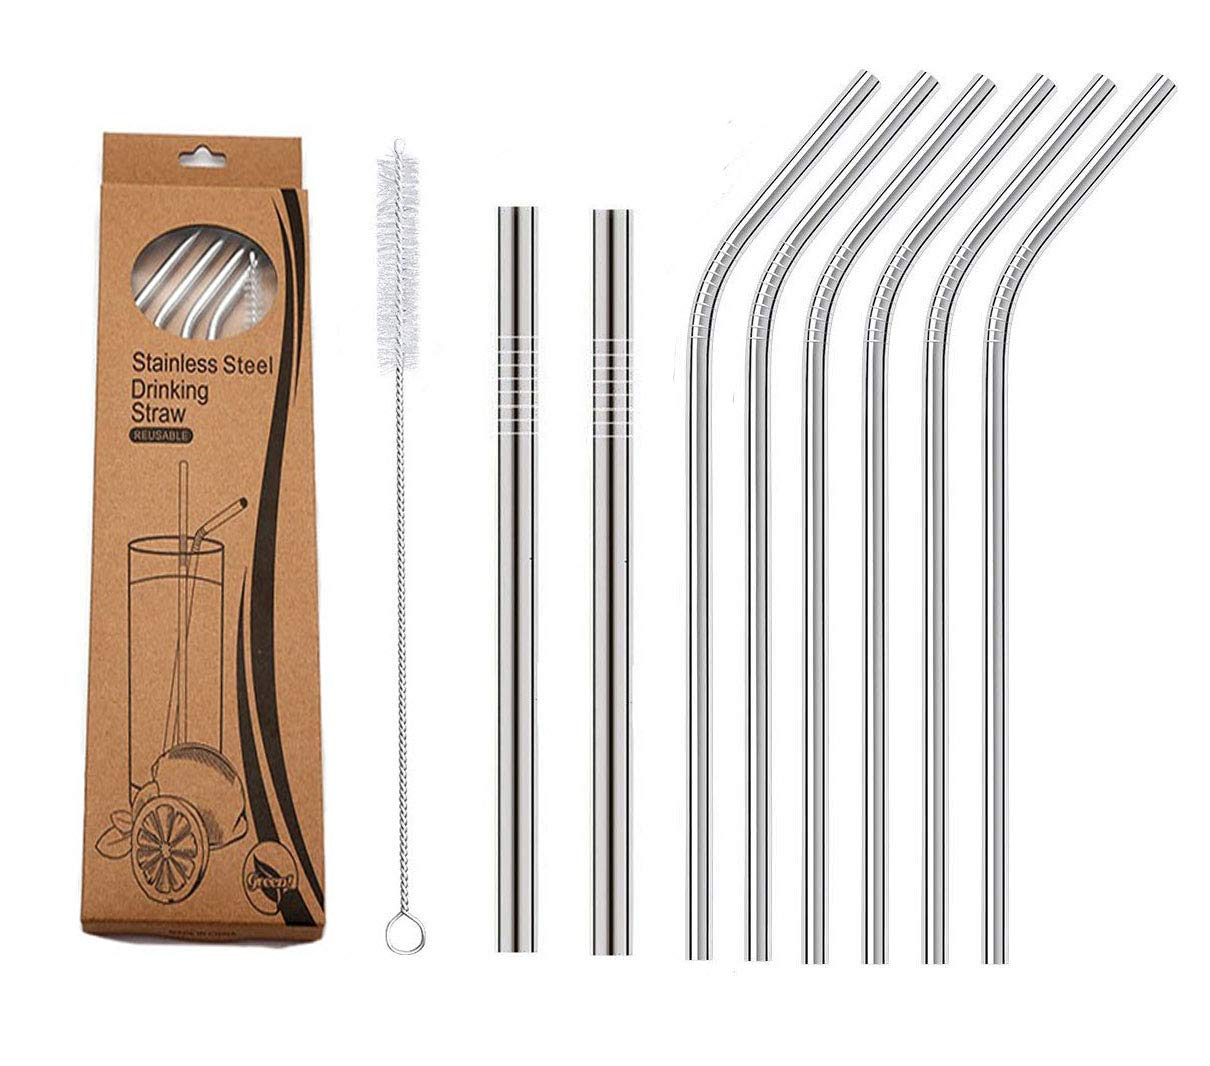 Ssuger9 Stainless Steel Straws Reusable 8 Set,Straws with 1 Cleaning Brush for Smoothie, Milkshake, Cocktail, Milk tea and for 30oz Tumblers Cups Mugs